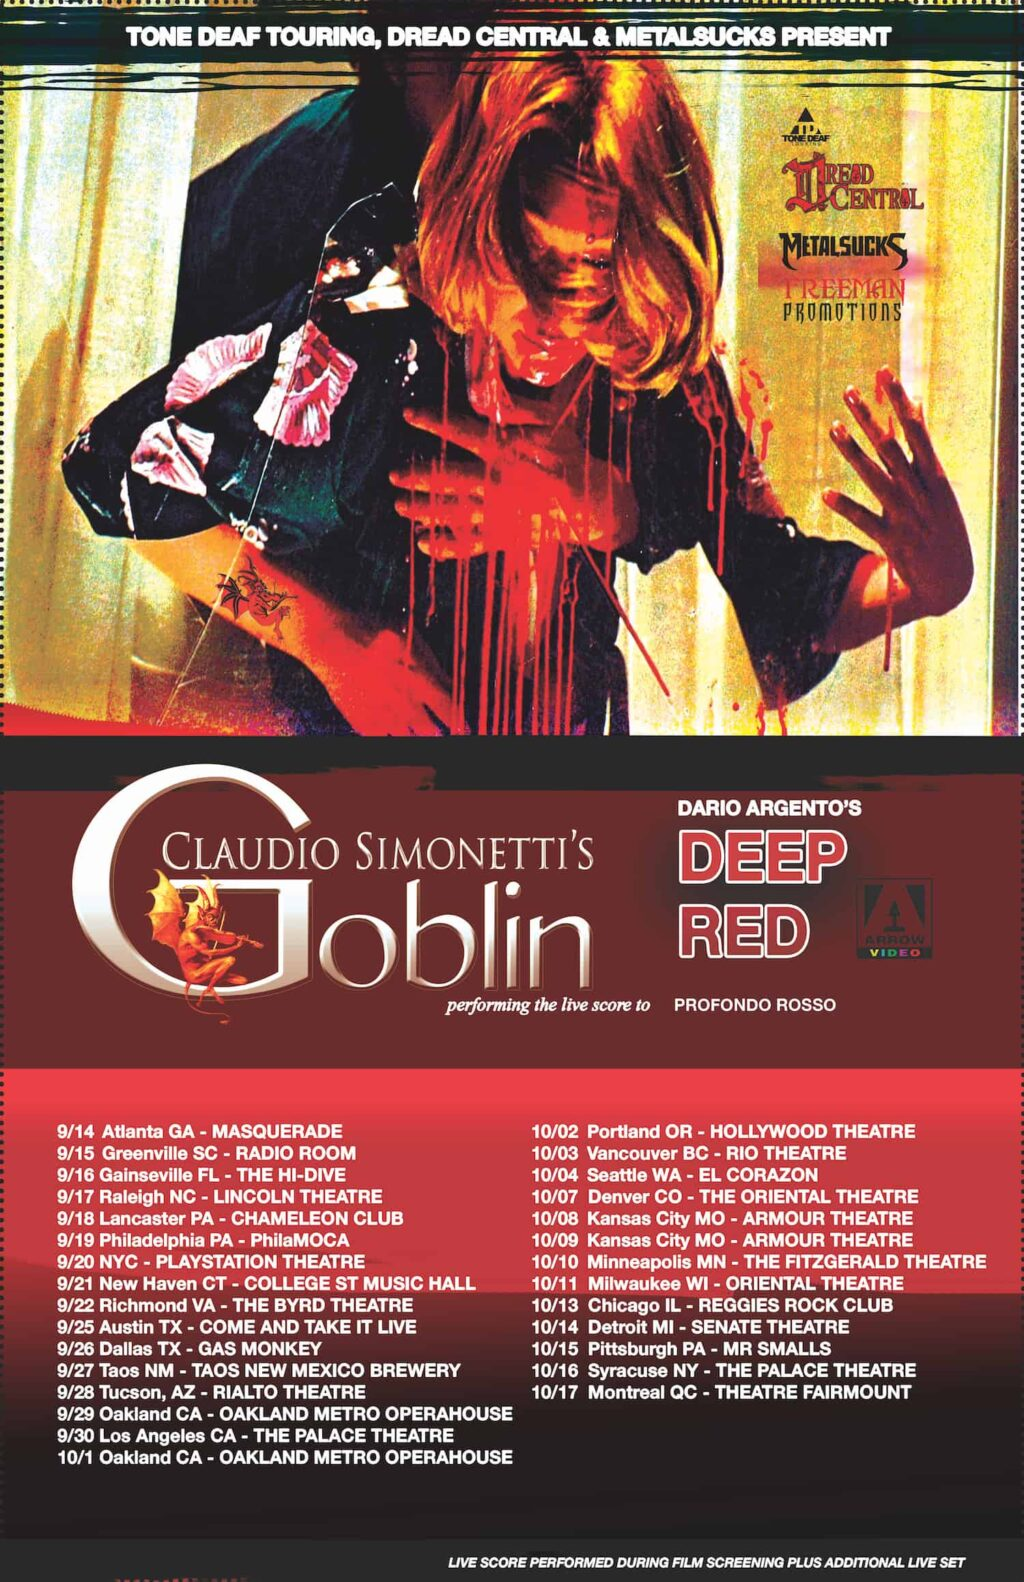 GOBLIN POSTER PALACE 1 1024x1582 - Claudio Simonetti's GOBLIN Fall Tour: Full Dates Released